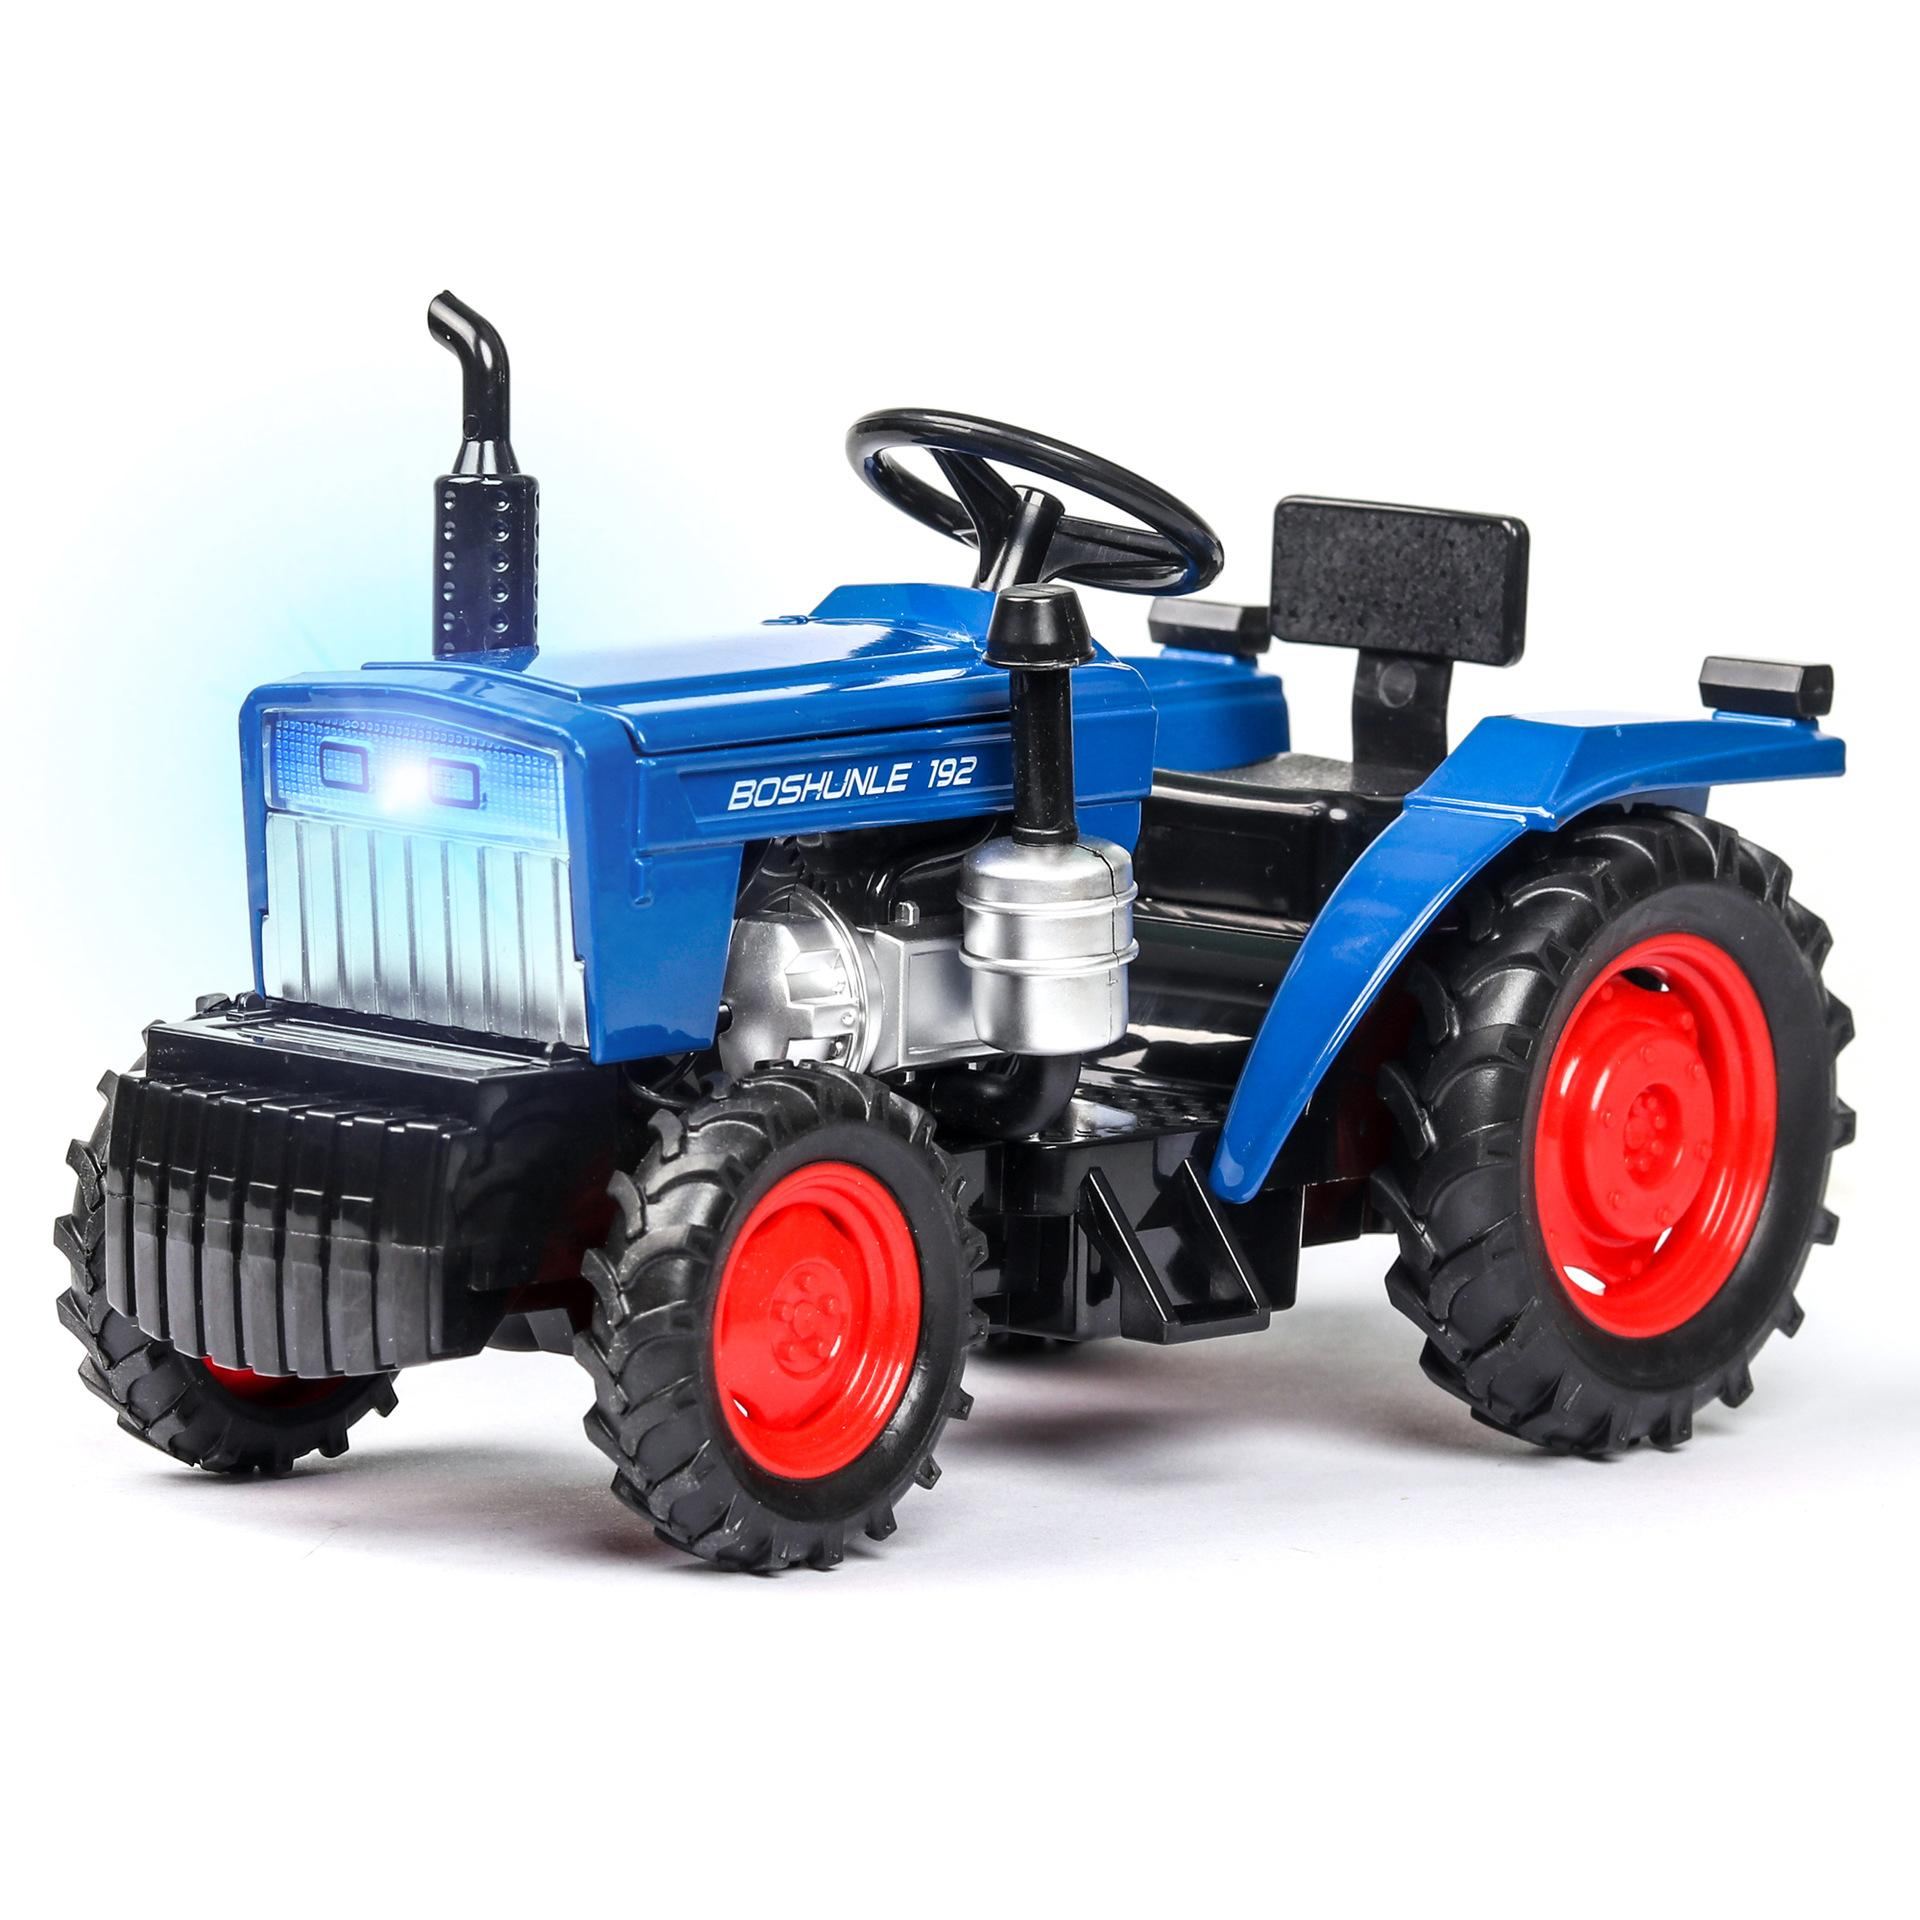 (Boxed) simulation dedicated tractor bags open children's toys sound and light alloy car models 1:32 Wholesale Farm